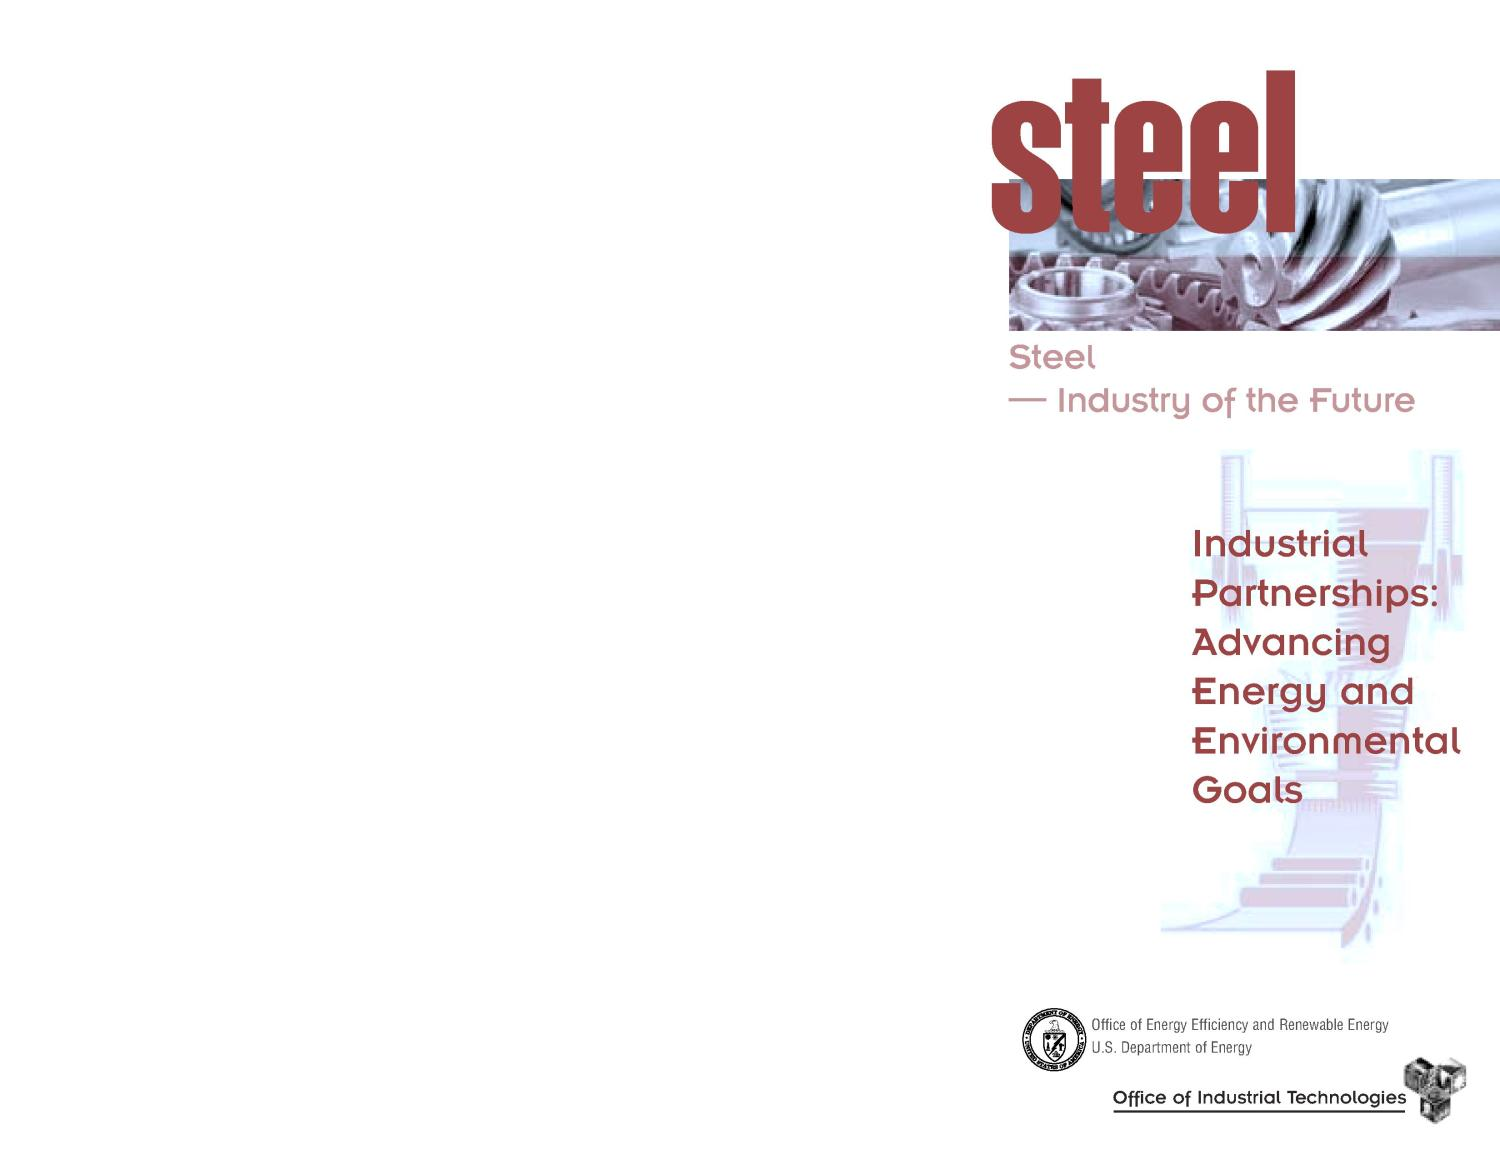 Steel--Industry of the Future; Industrial Partnerships: Advancing Energy and Environmental Goals                                                                                                      [Sequence #]: 1 of 6